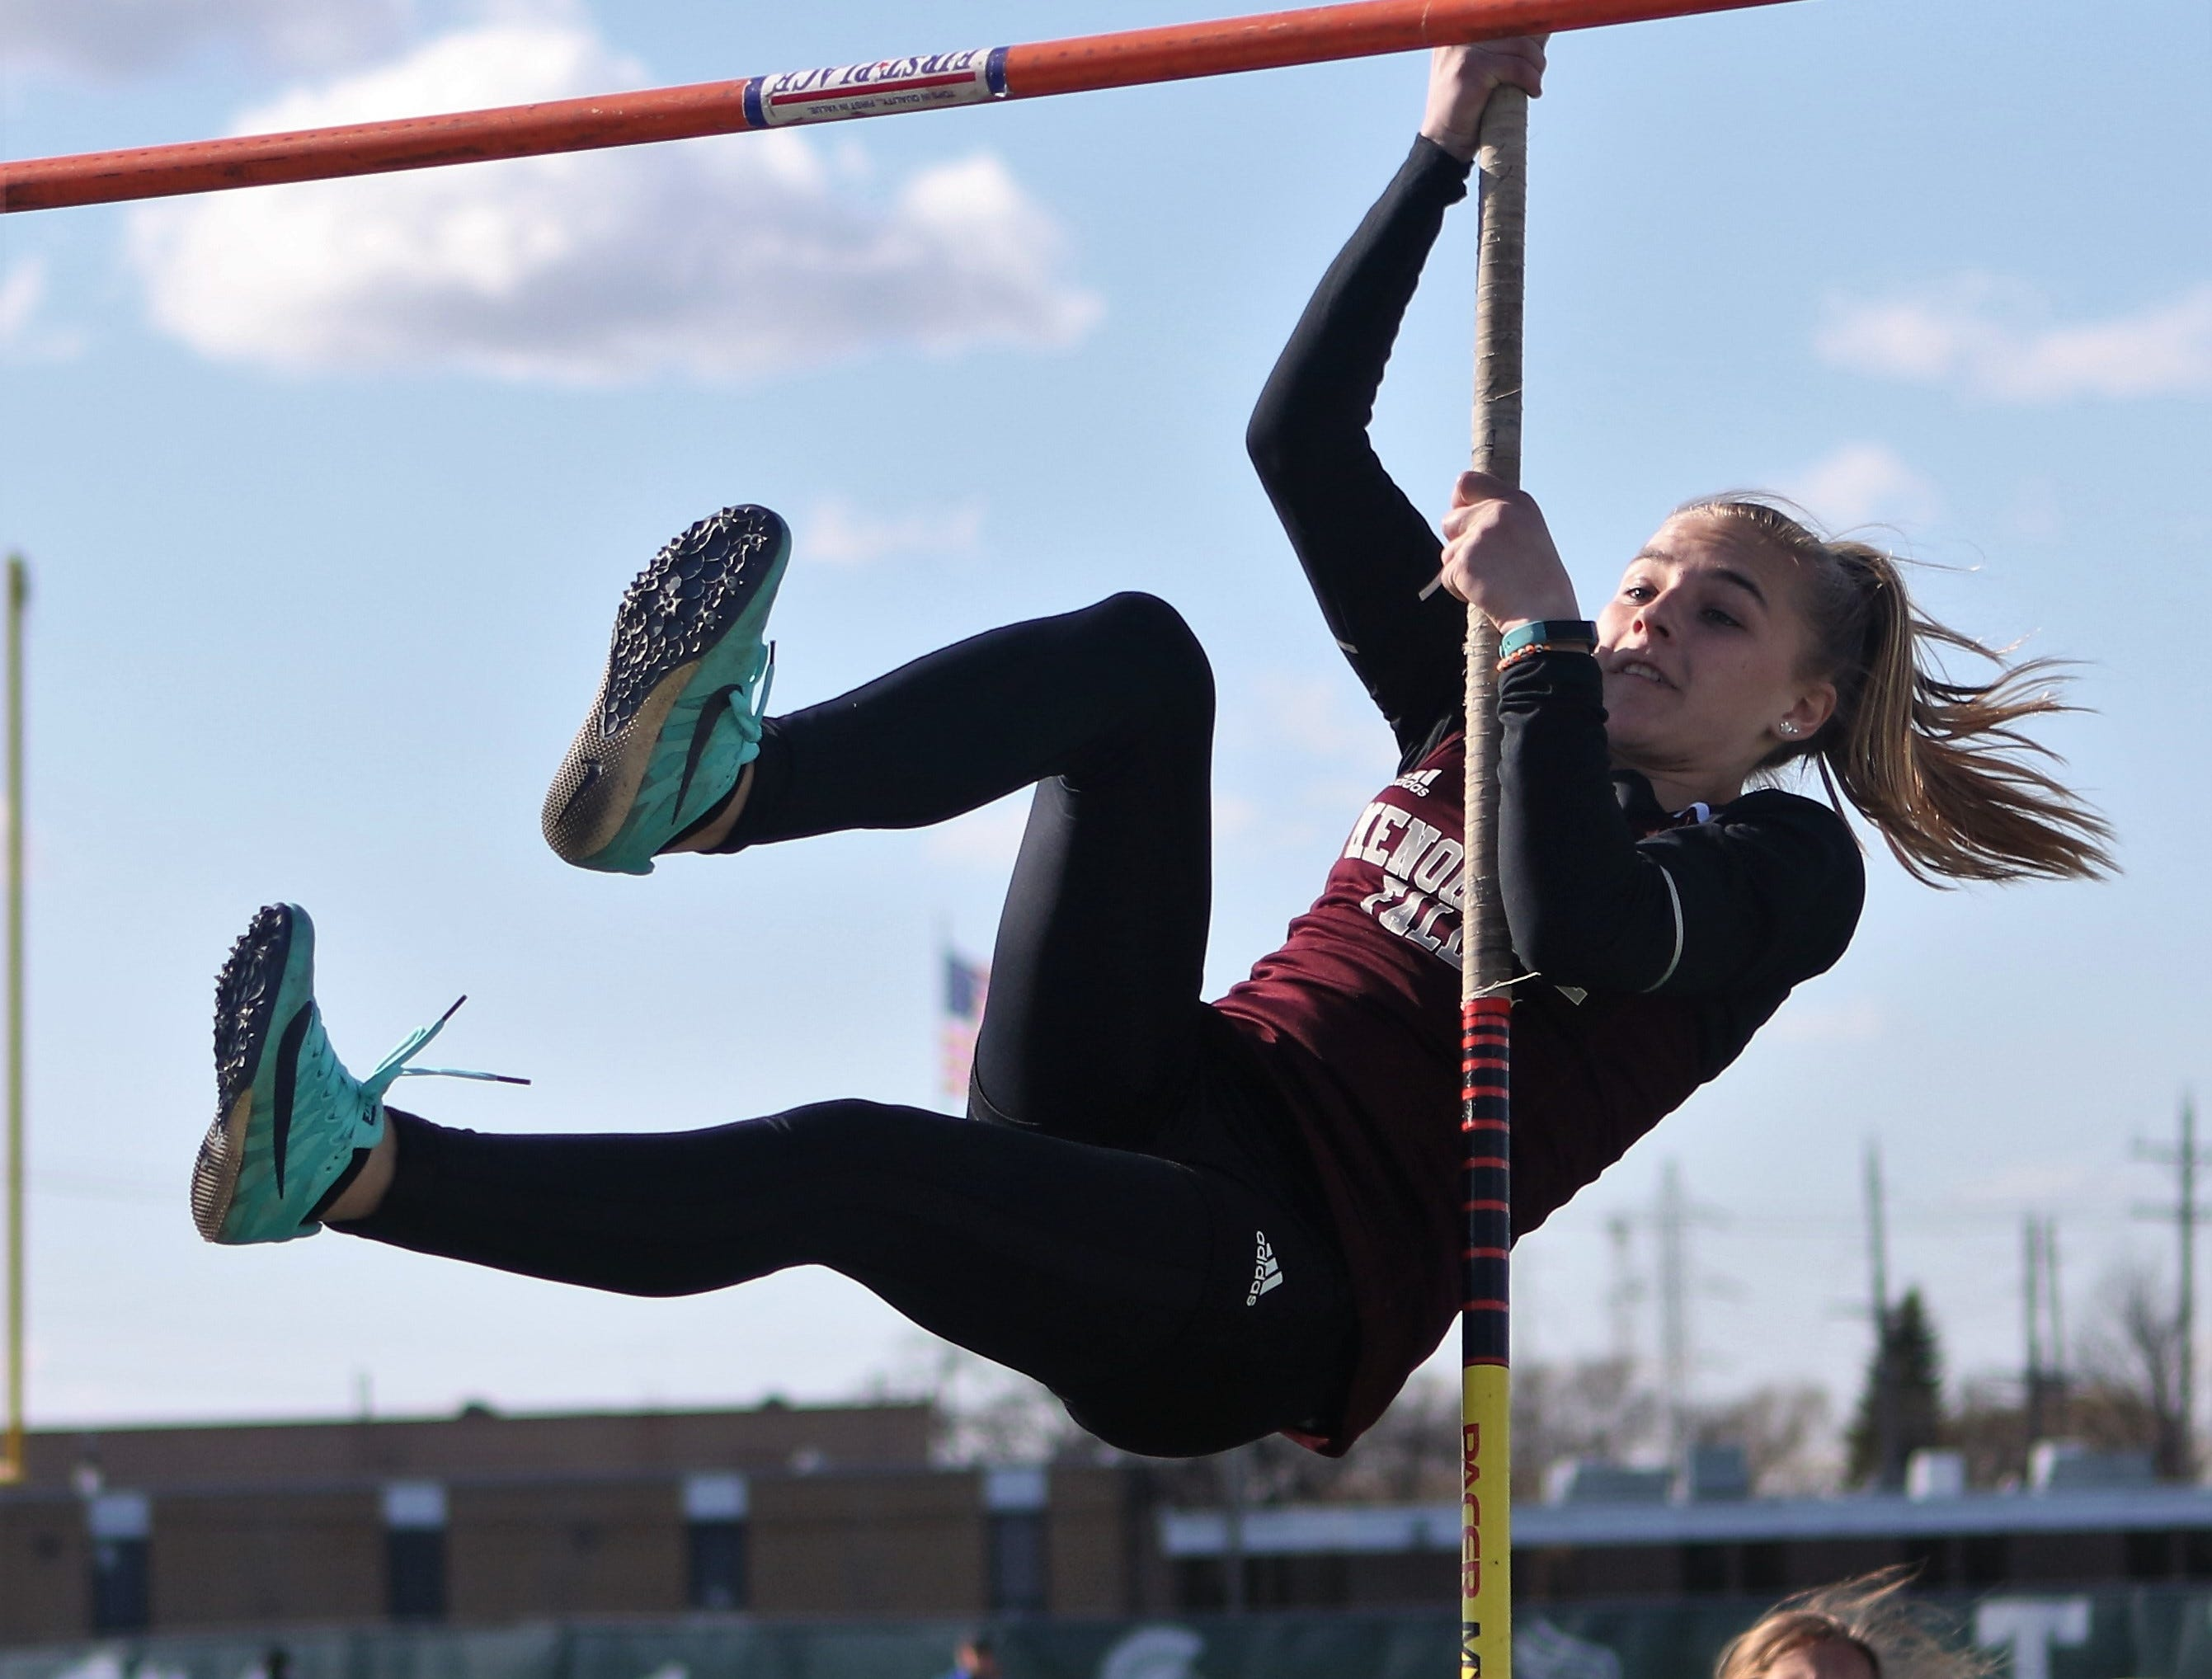 Haley Kanitz of Menomonee Falls competes in the pole vault competition during the Dan Benson Invitational at Wauwatosa West on April 26, 2019.